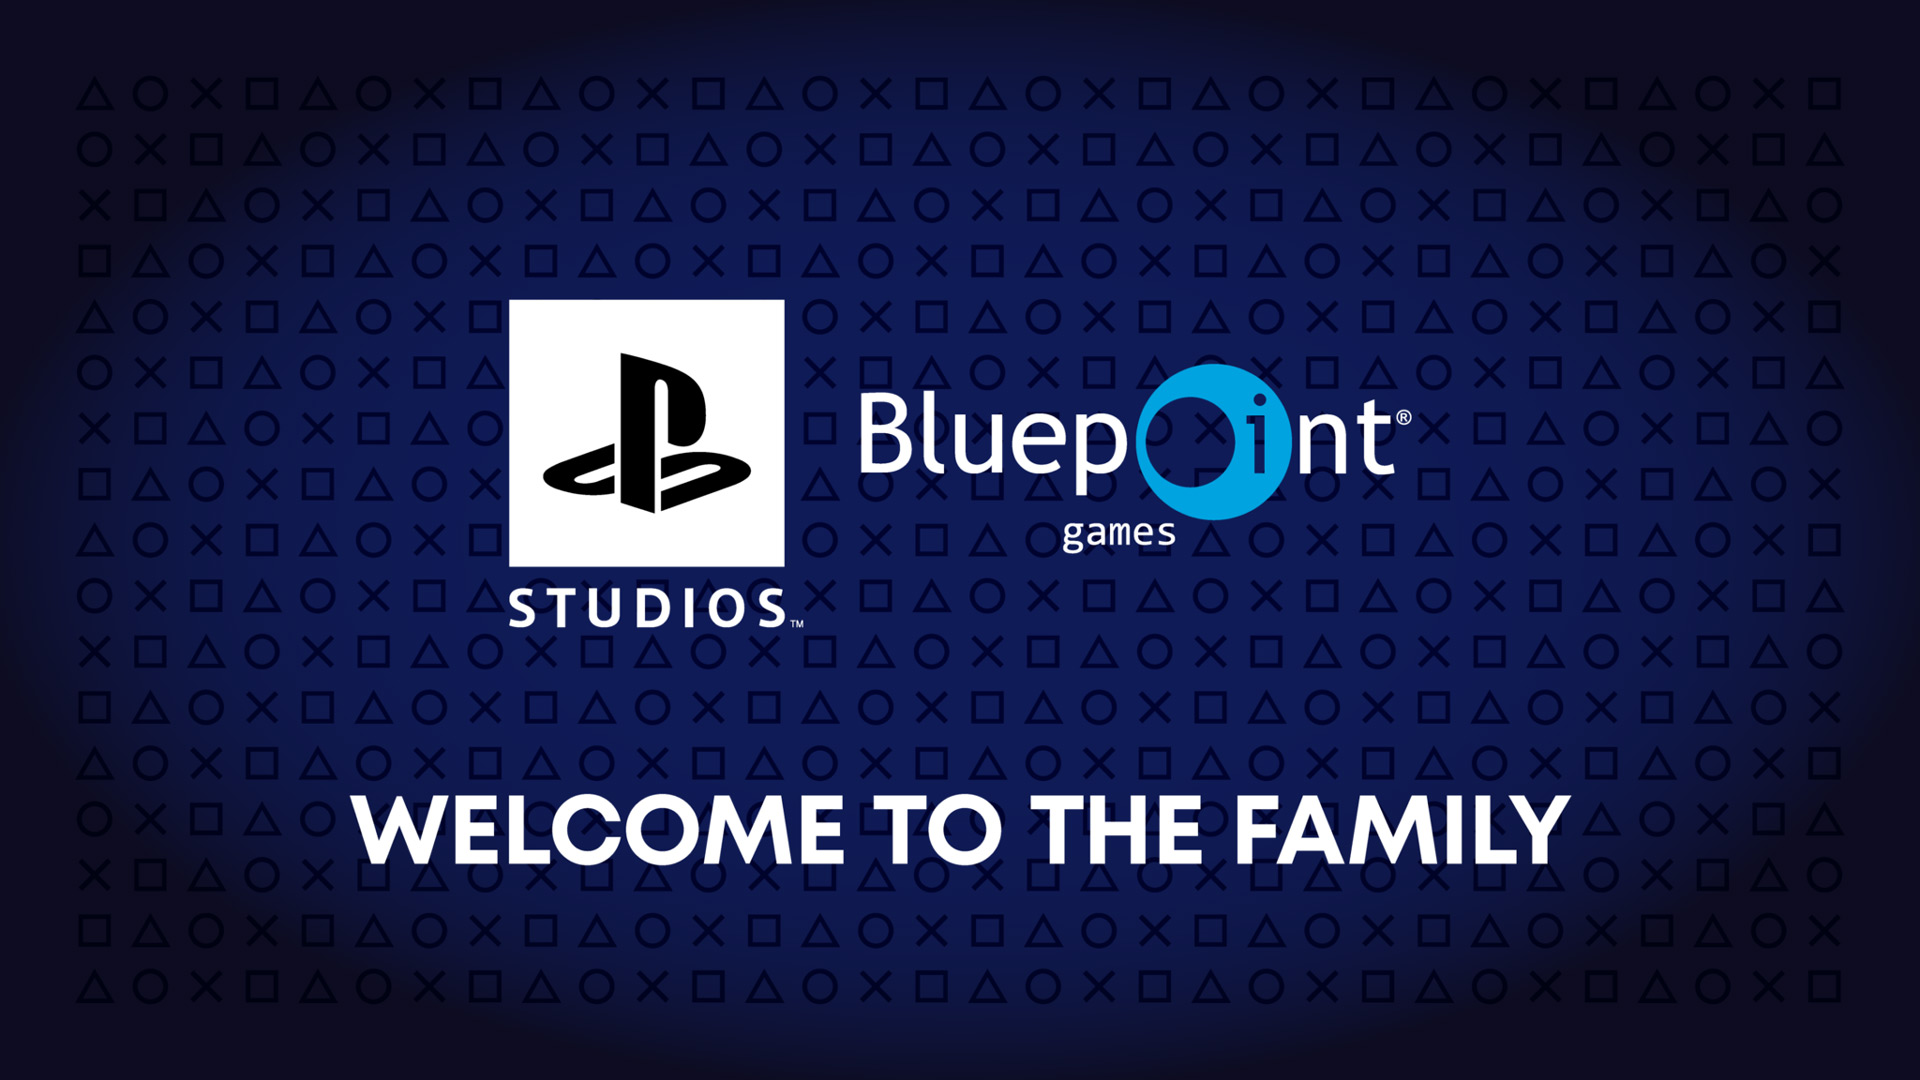 Bluepoint Games & PlayStation Studios